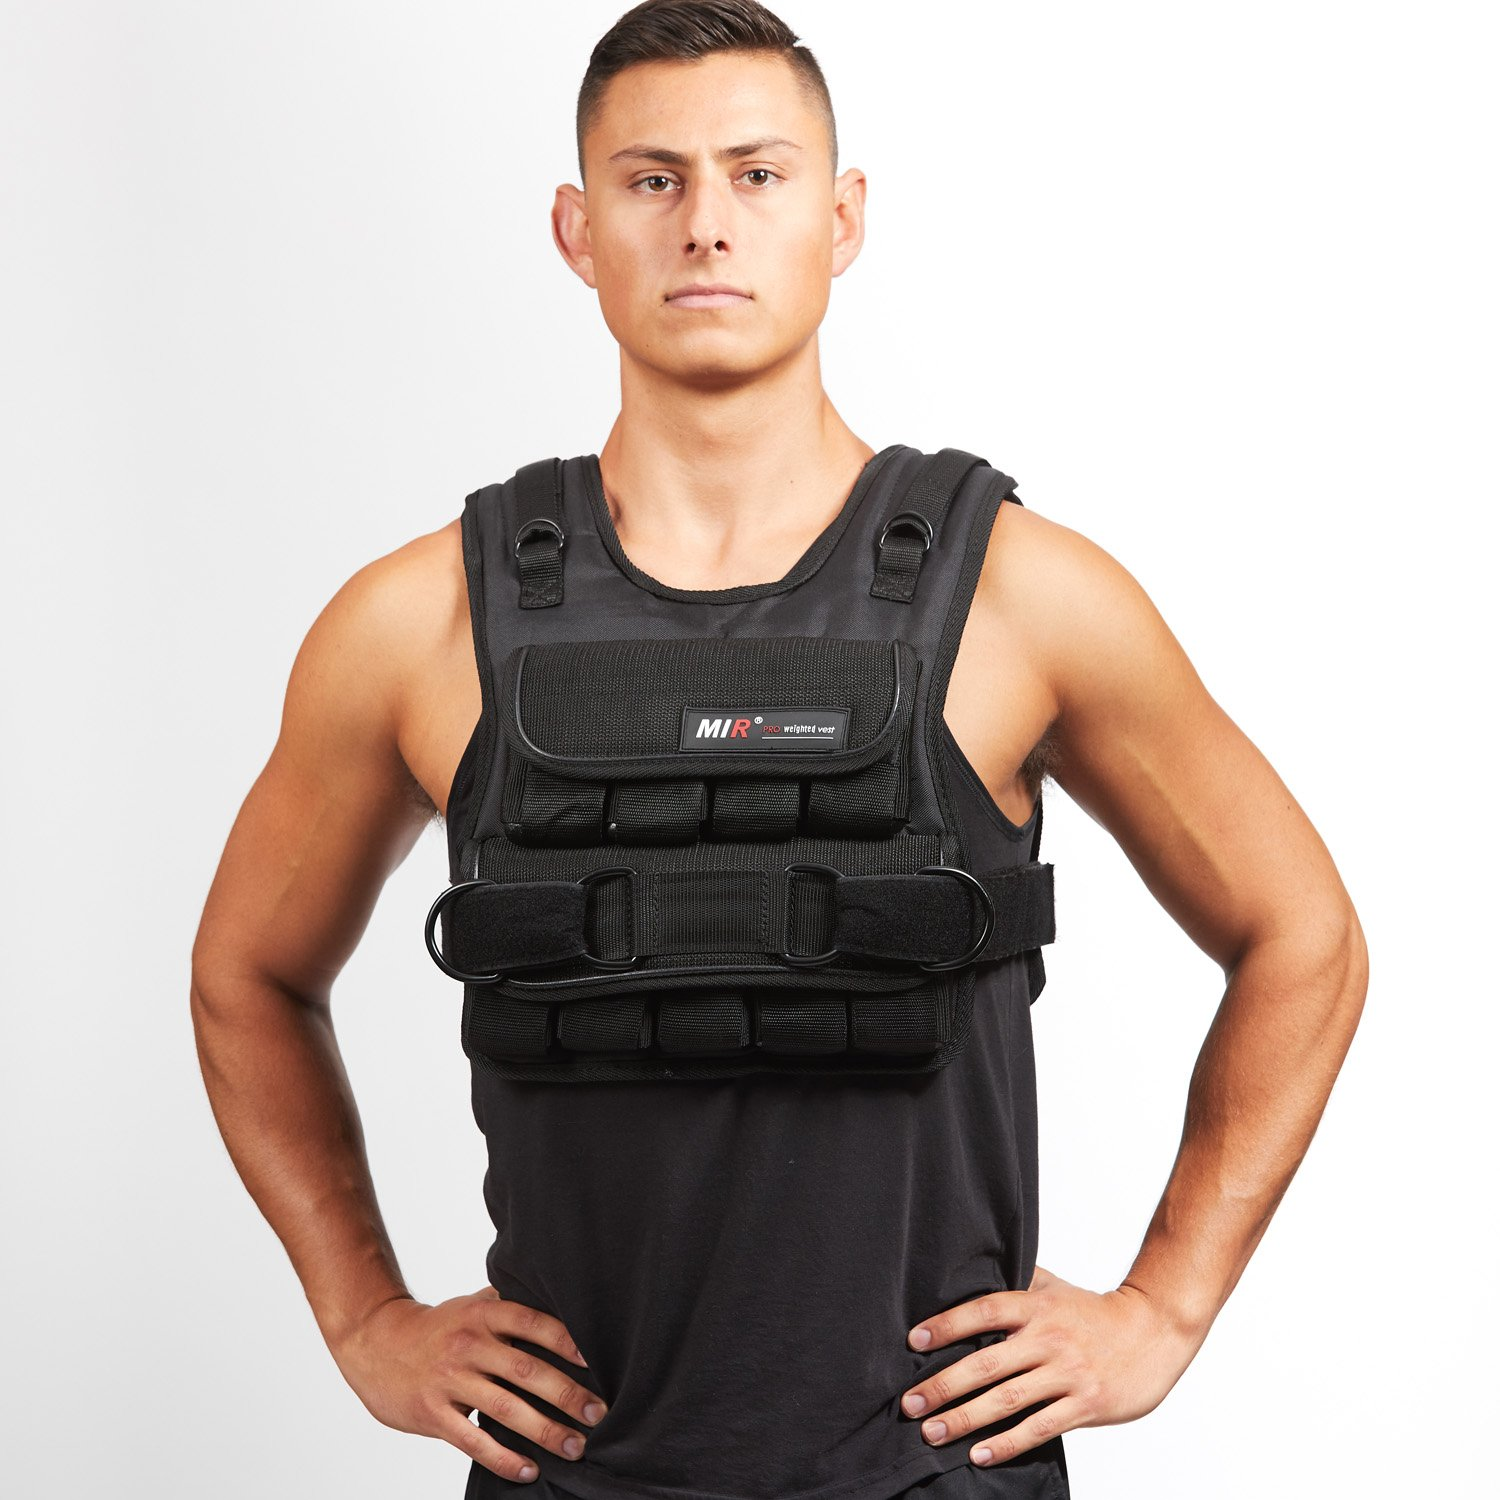 MIR - 30LBS SLIM ADJUSTABLE WEIGHTED VEST by ZFOsports